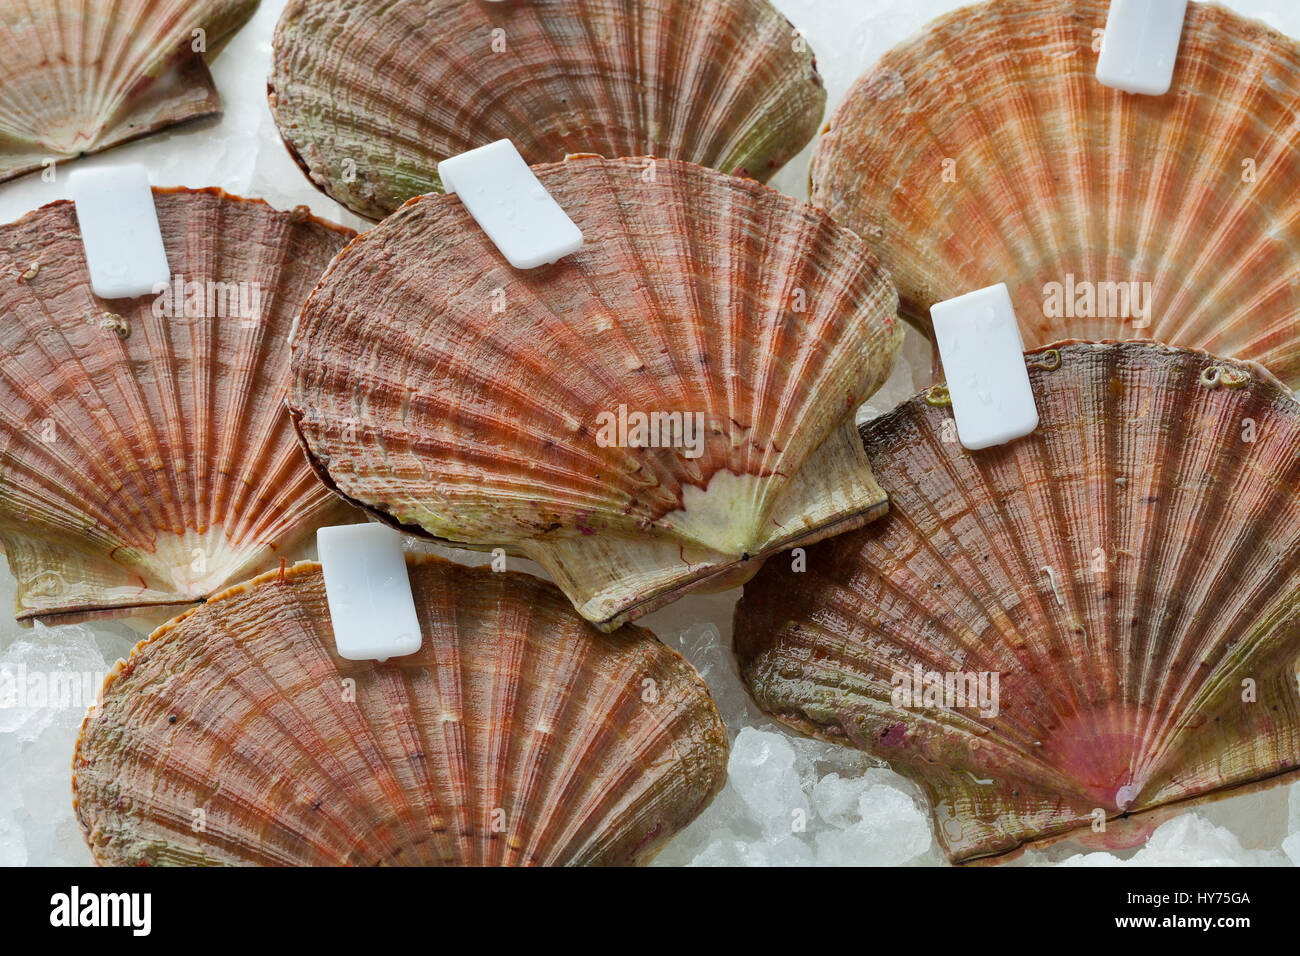 Fresh raw scallops on ice in the shell with clips close up - Stock Image